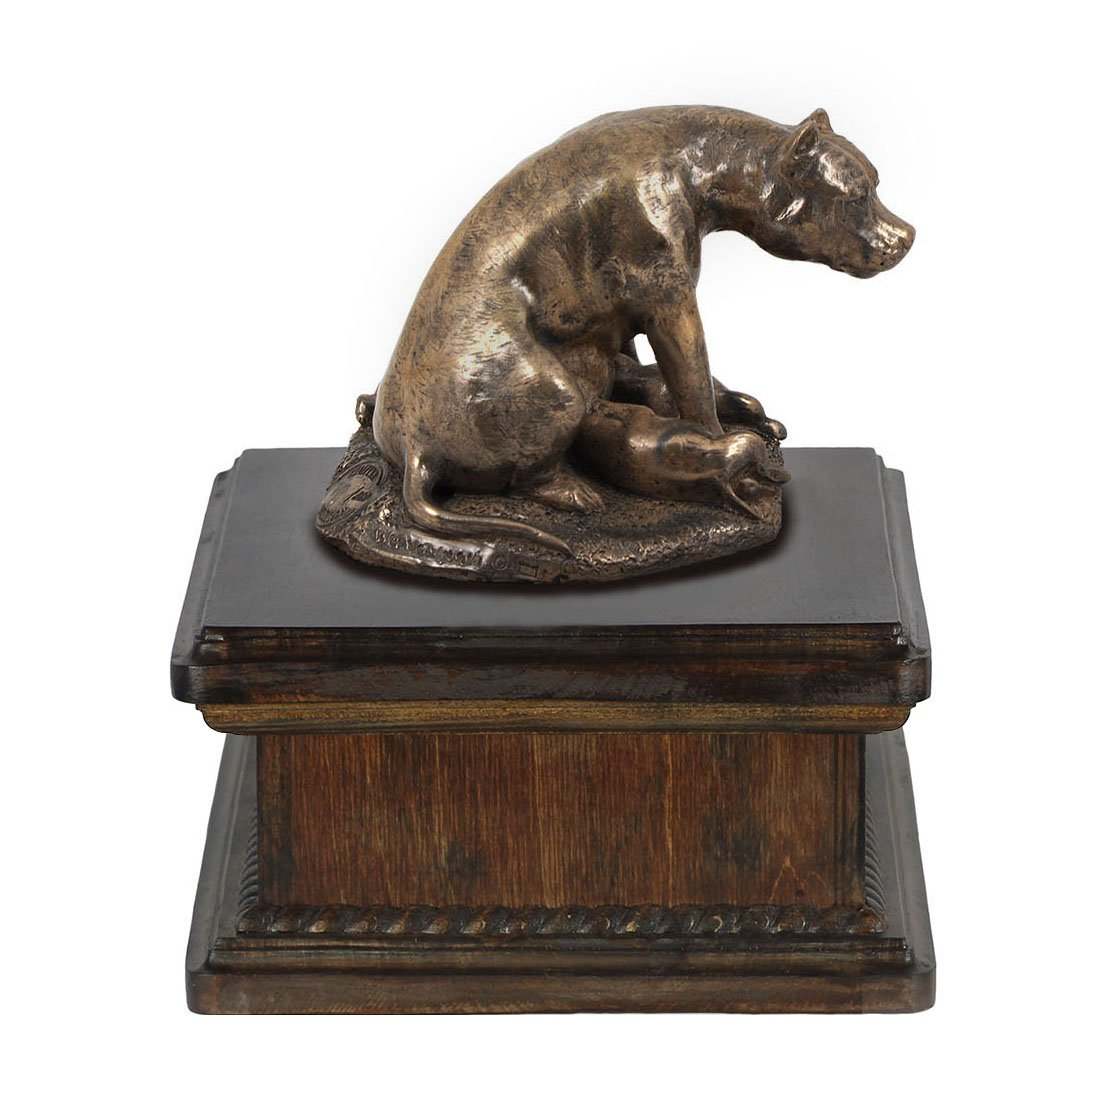 American Staffordshire Terrier (mama), memorial, urn for dog's ashes, with dog statue, exclusive, ArtDog